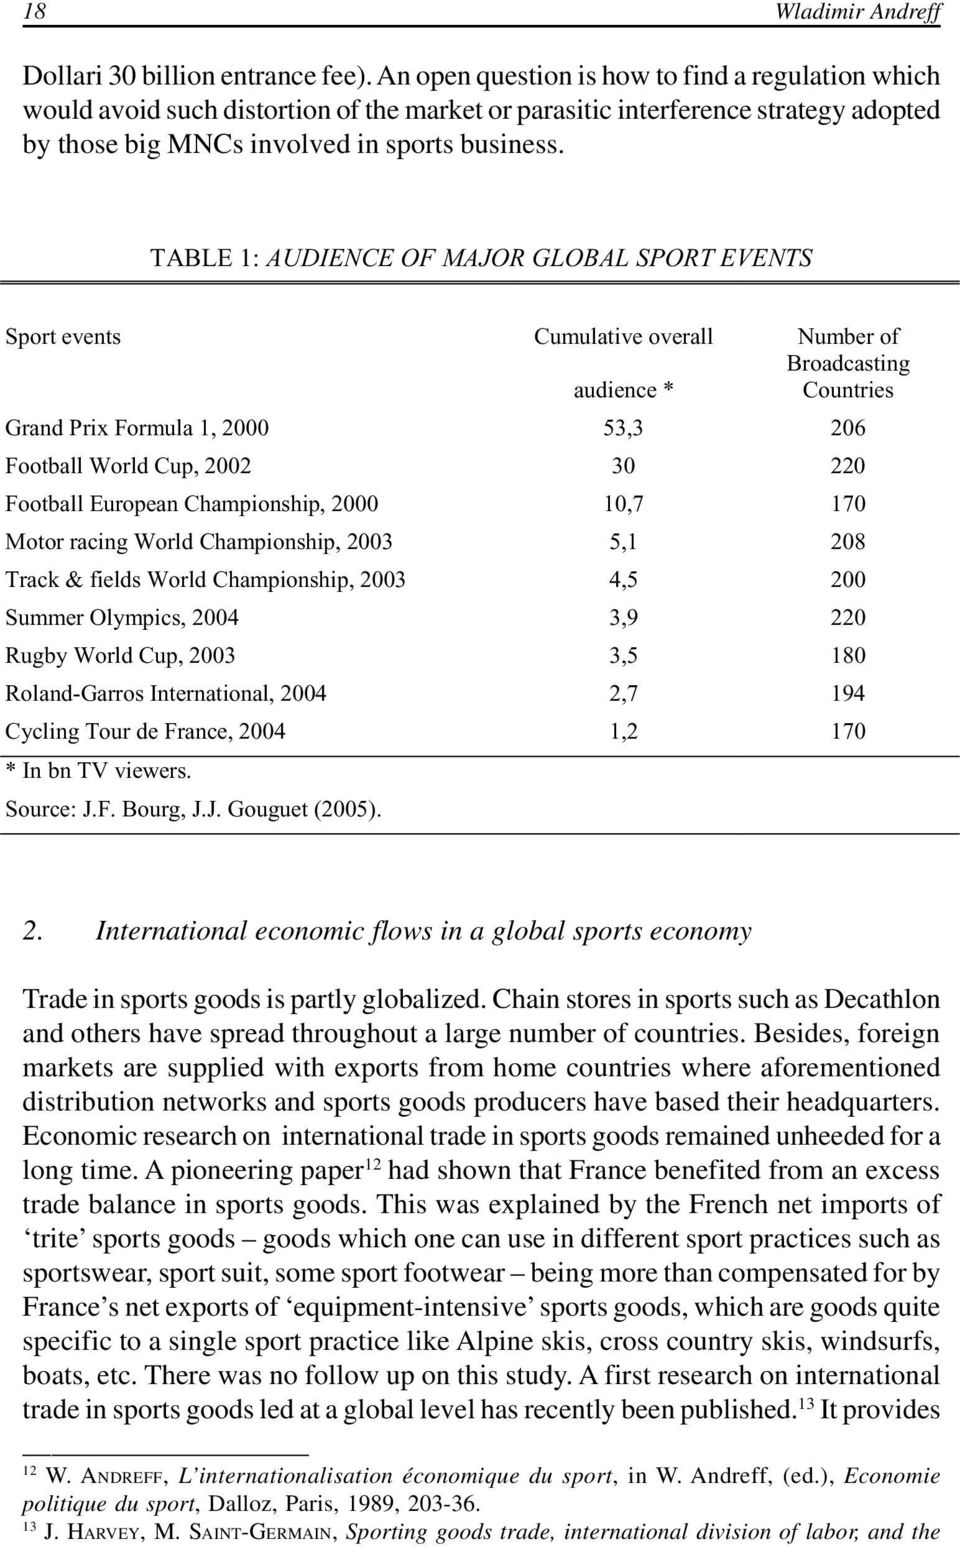 TABLE 1: AUDIENCE OF MAJOR GLOBAL SPORT EVENTS Sport events Cumulative overall Number of Broadcasting audience * Countries Grand Prix Formula 1, 2000 53,3 206 Football World Cup, 2002 30 220 Football